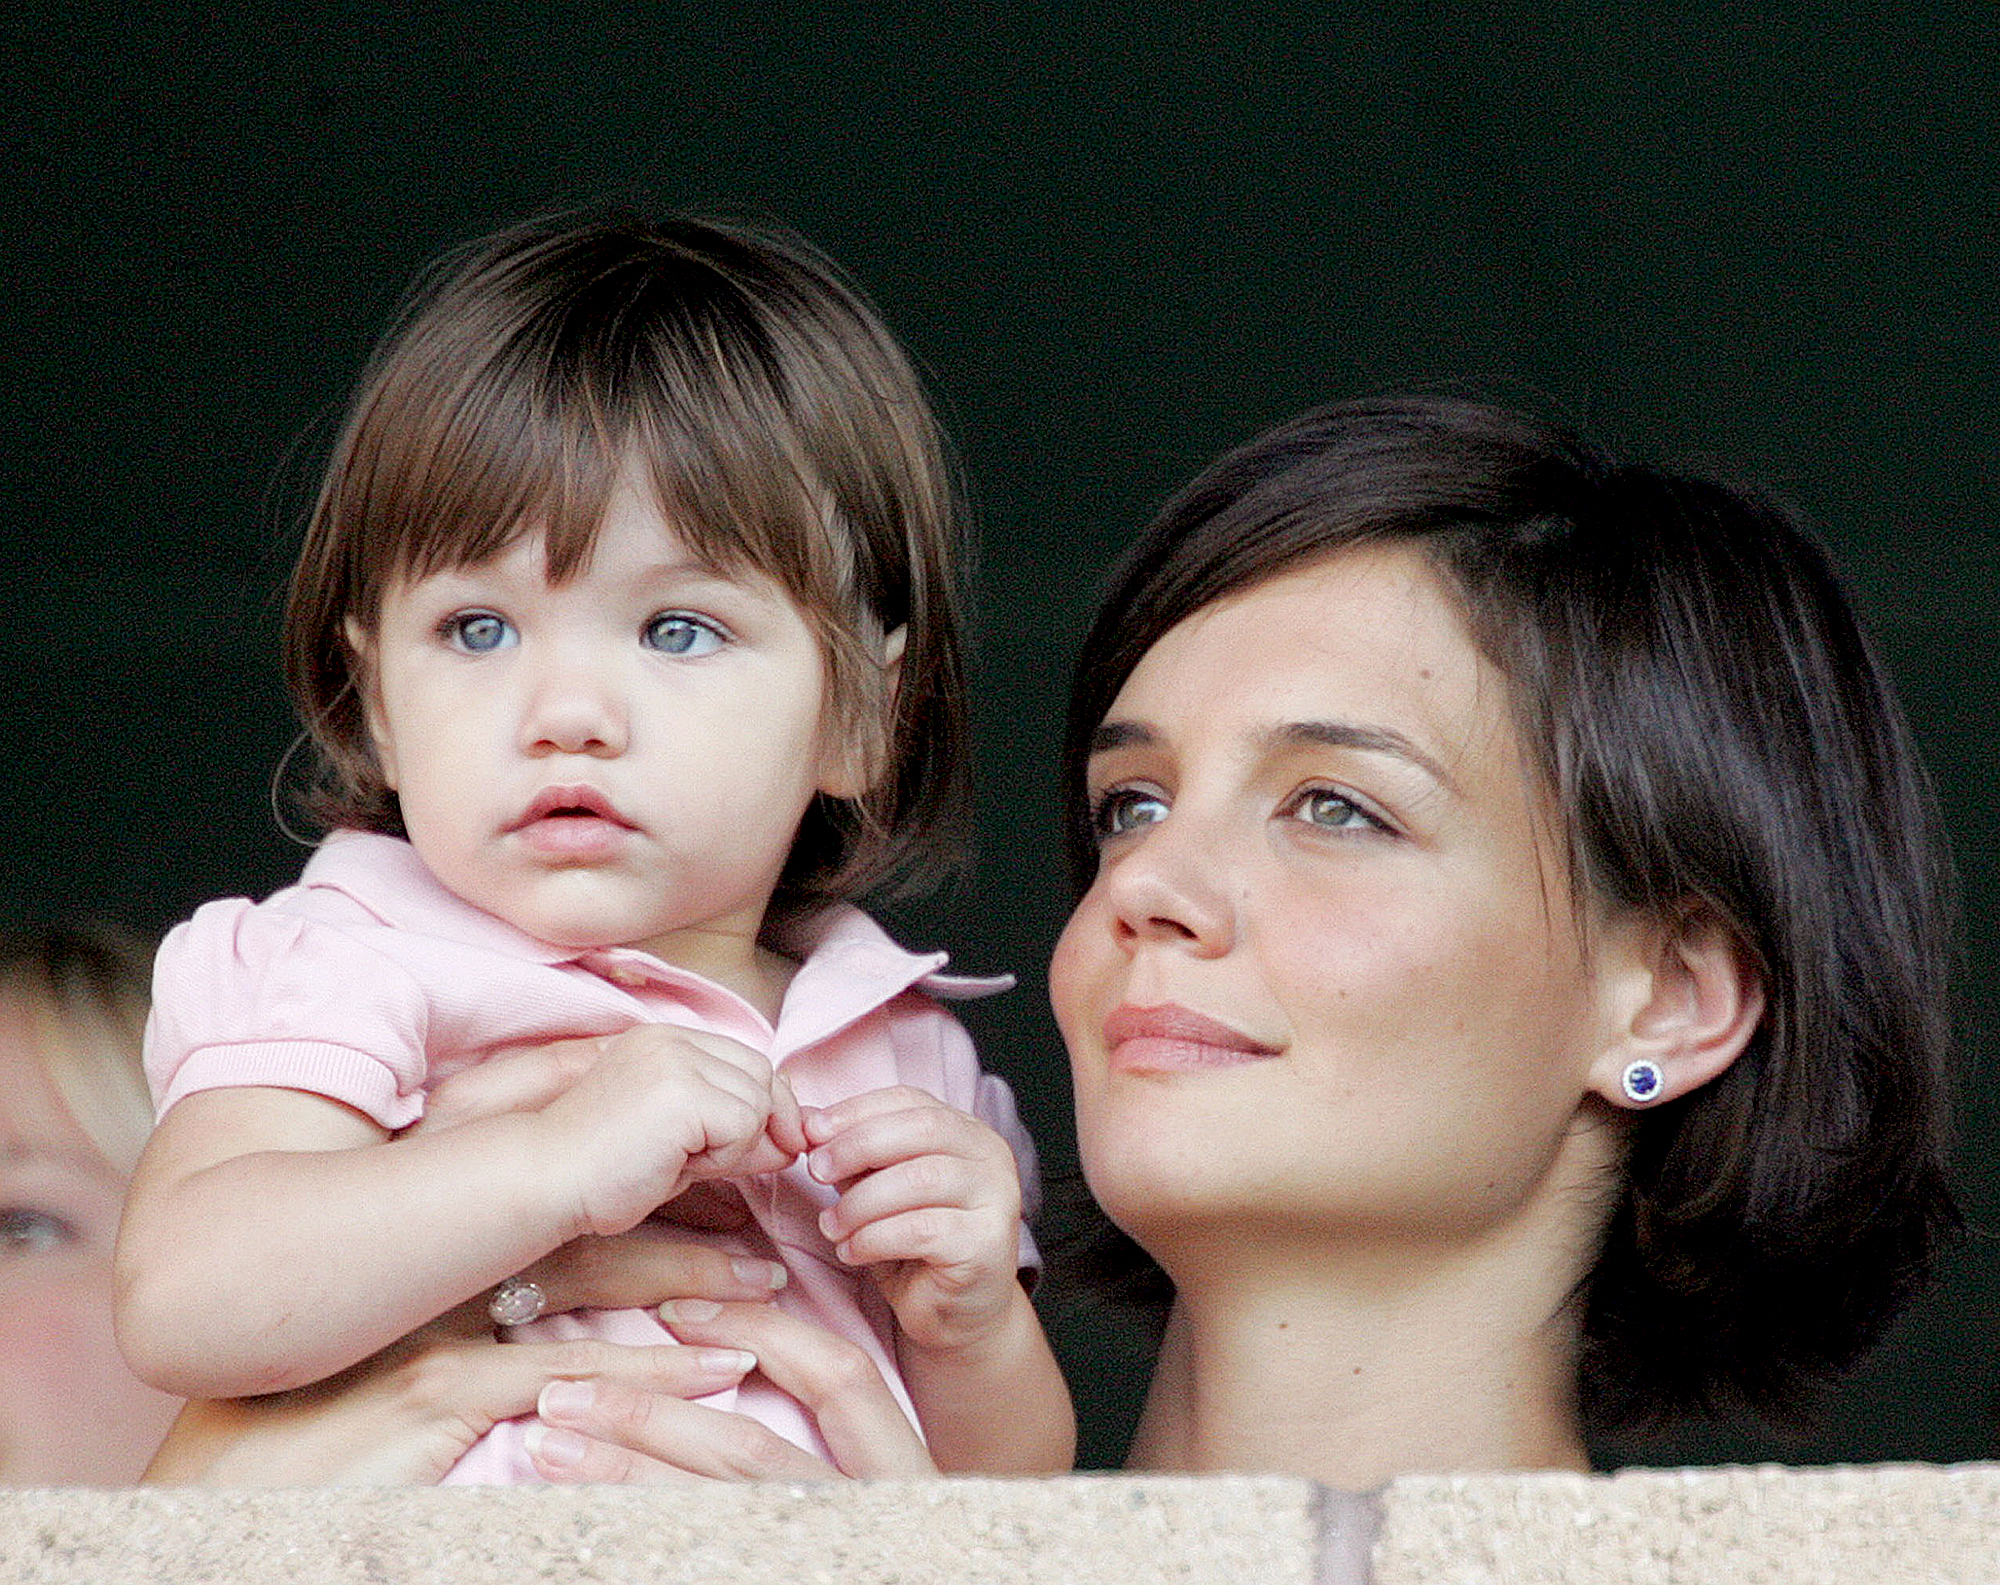 suri-cruise-katie-holmes - Holmes and Suri watched the LA Galaxy vs Chelsea FC soccer game in July 2007.